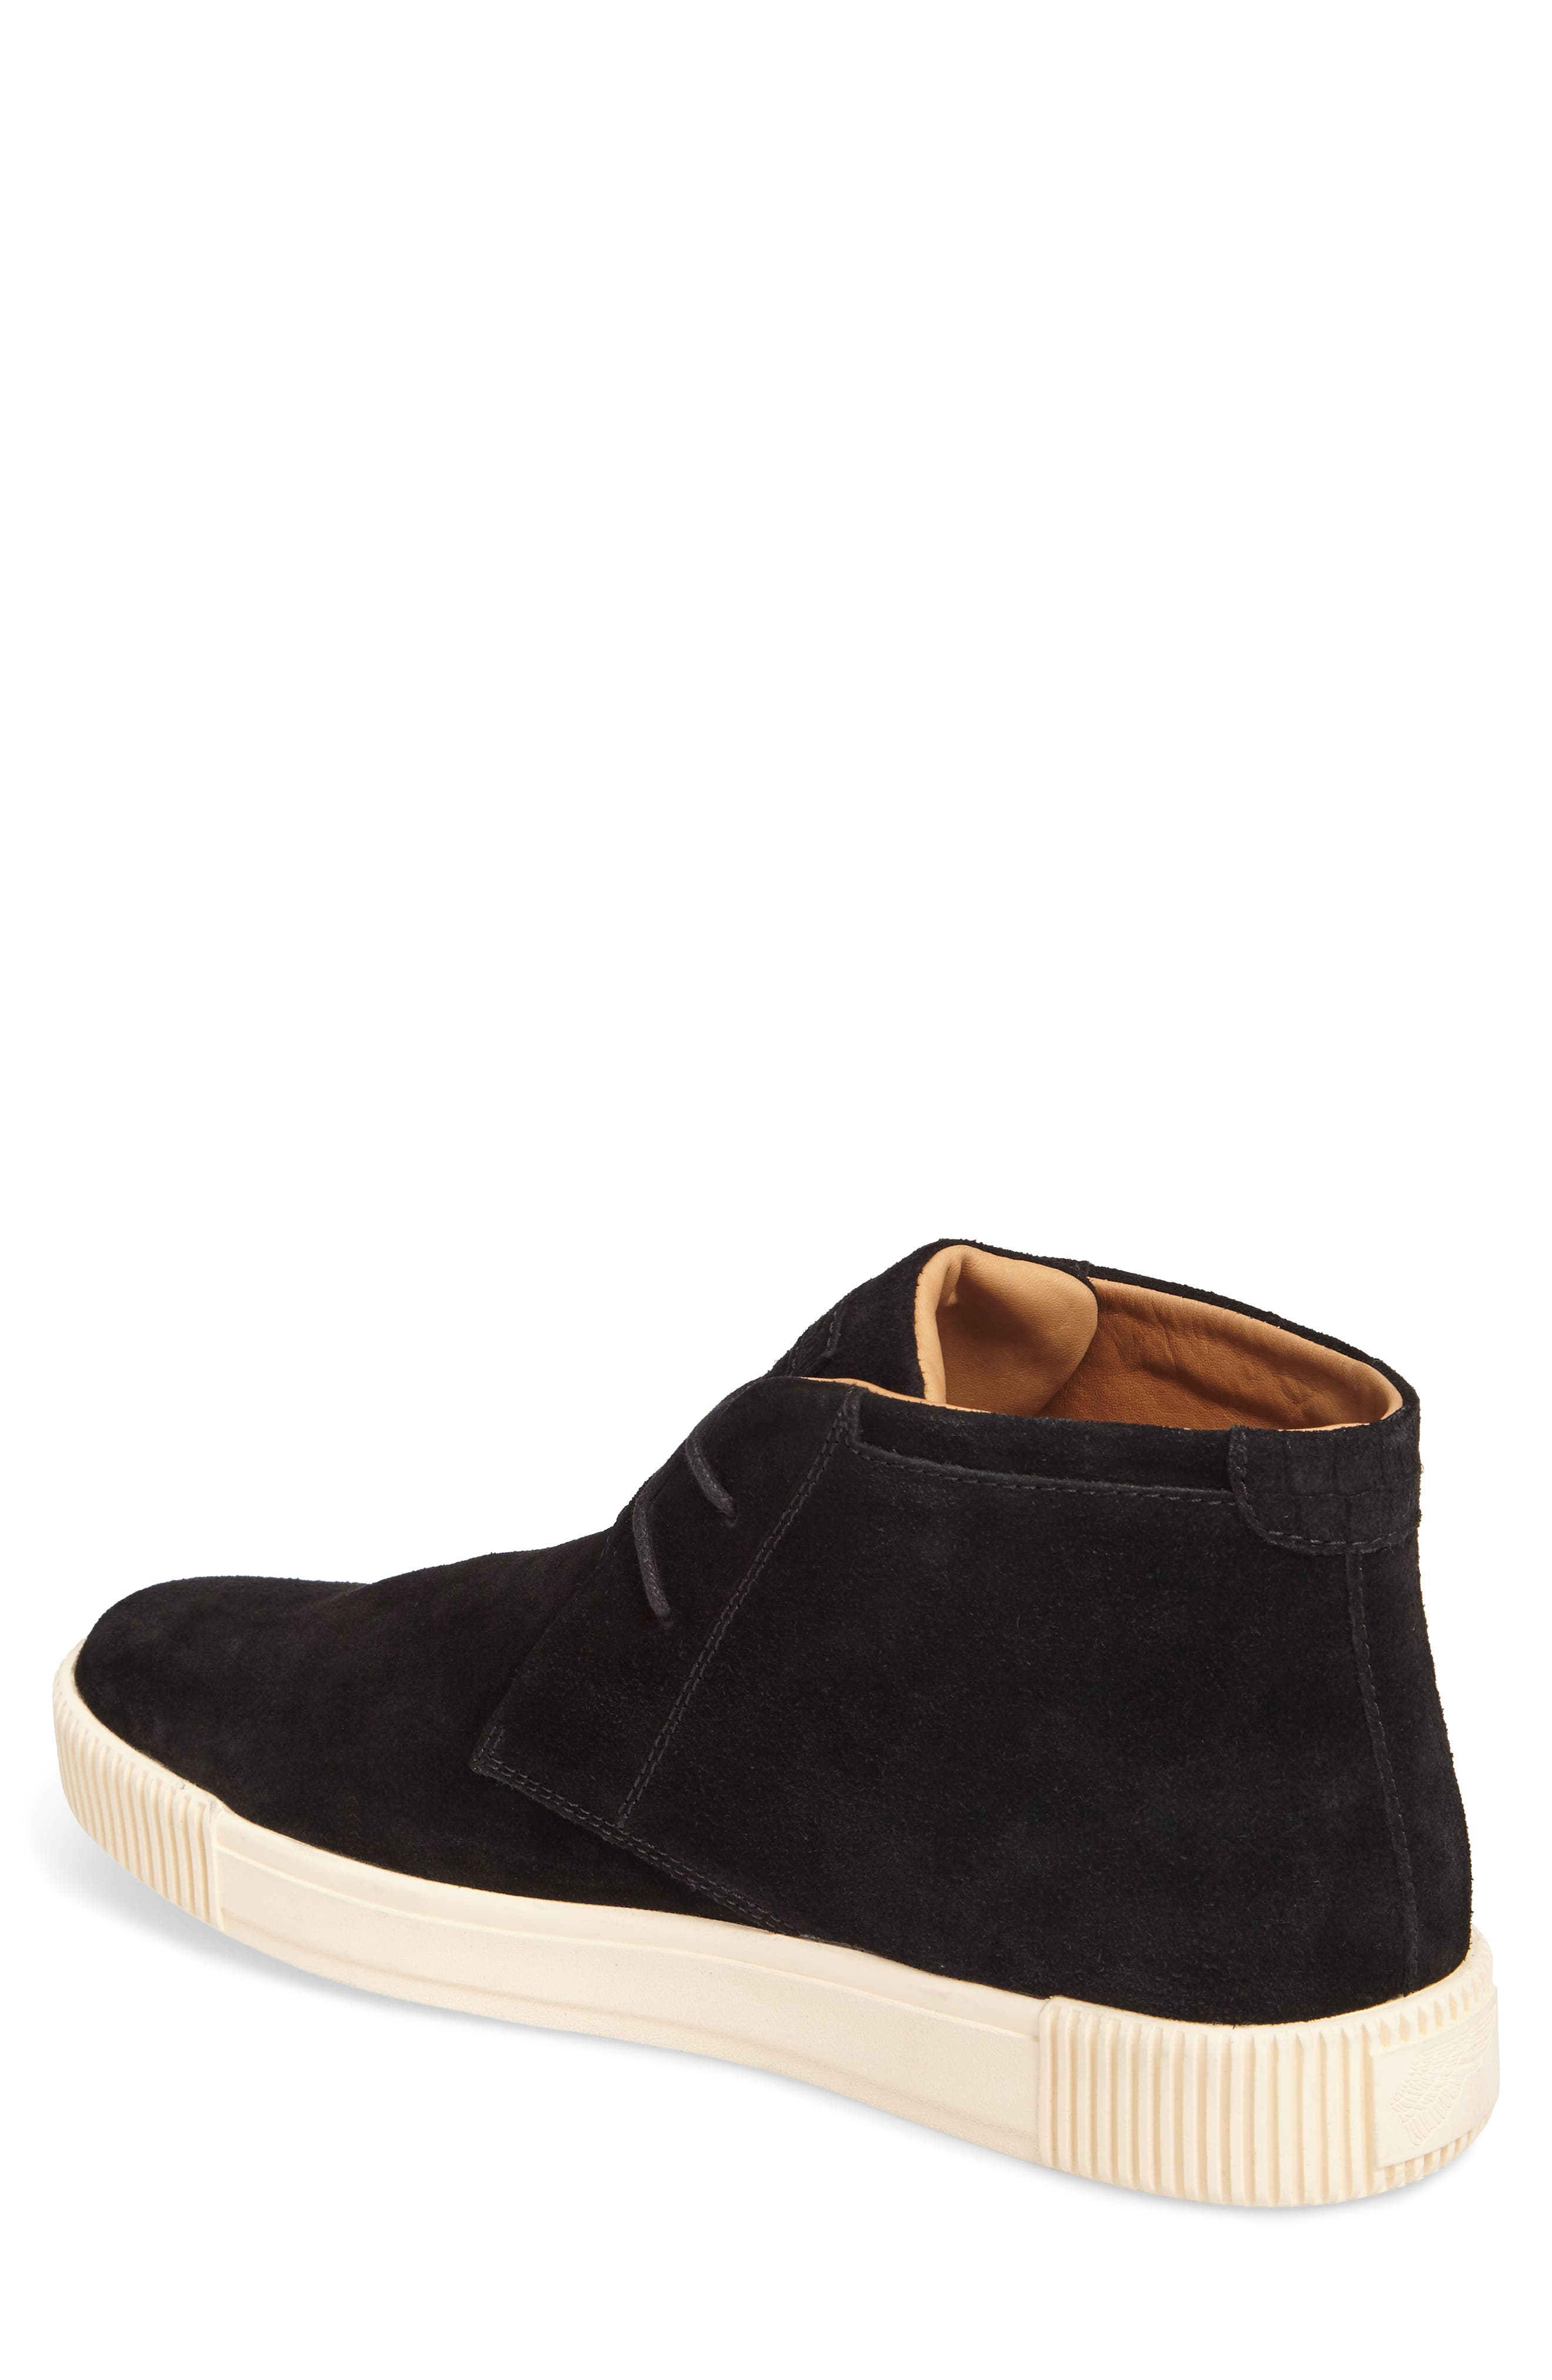 Lyons Chukka Sneaker,                             Alternate thumbnail 2, color,                             BLACK SUEDE